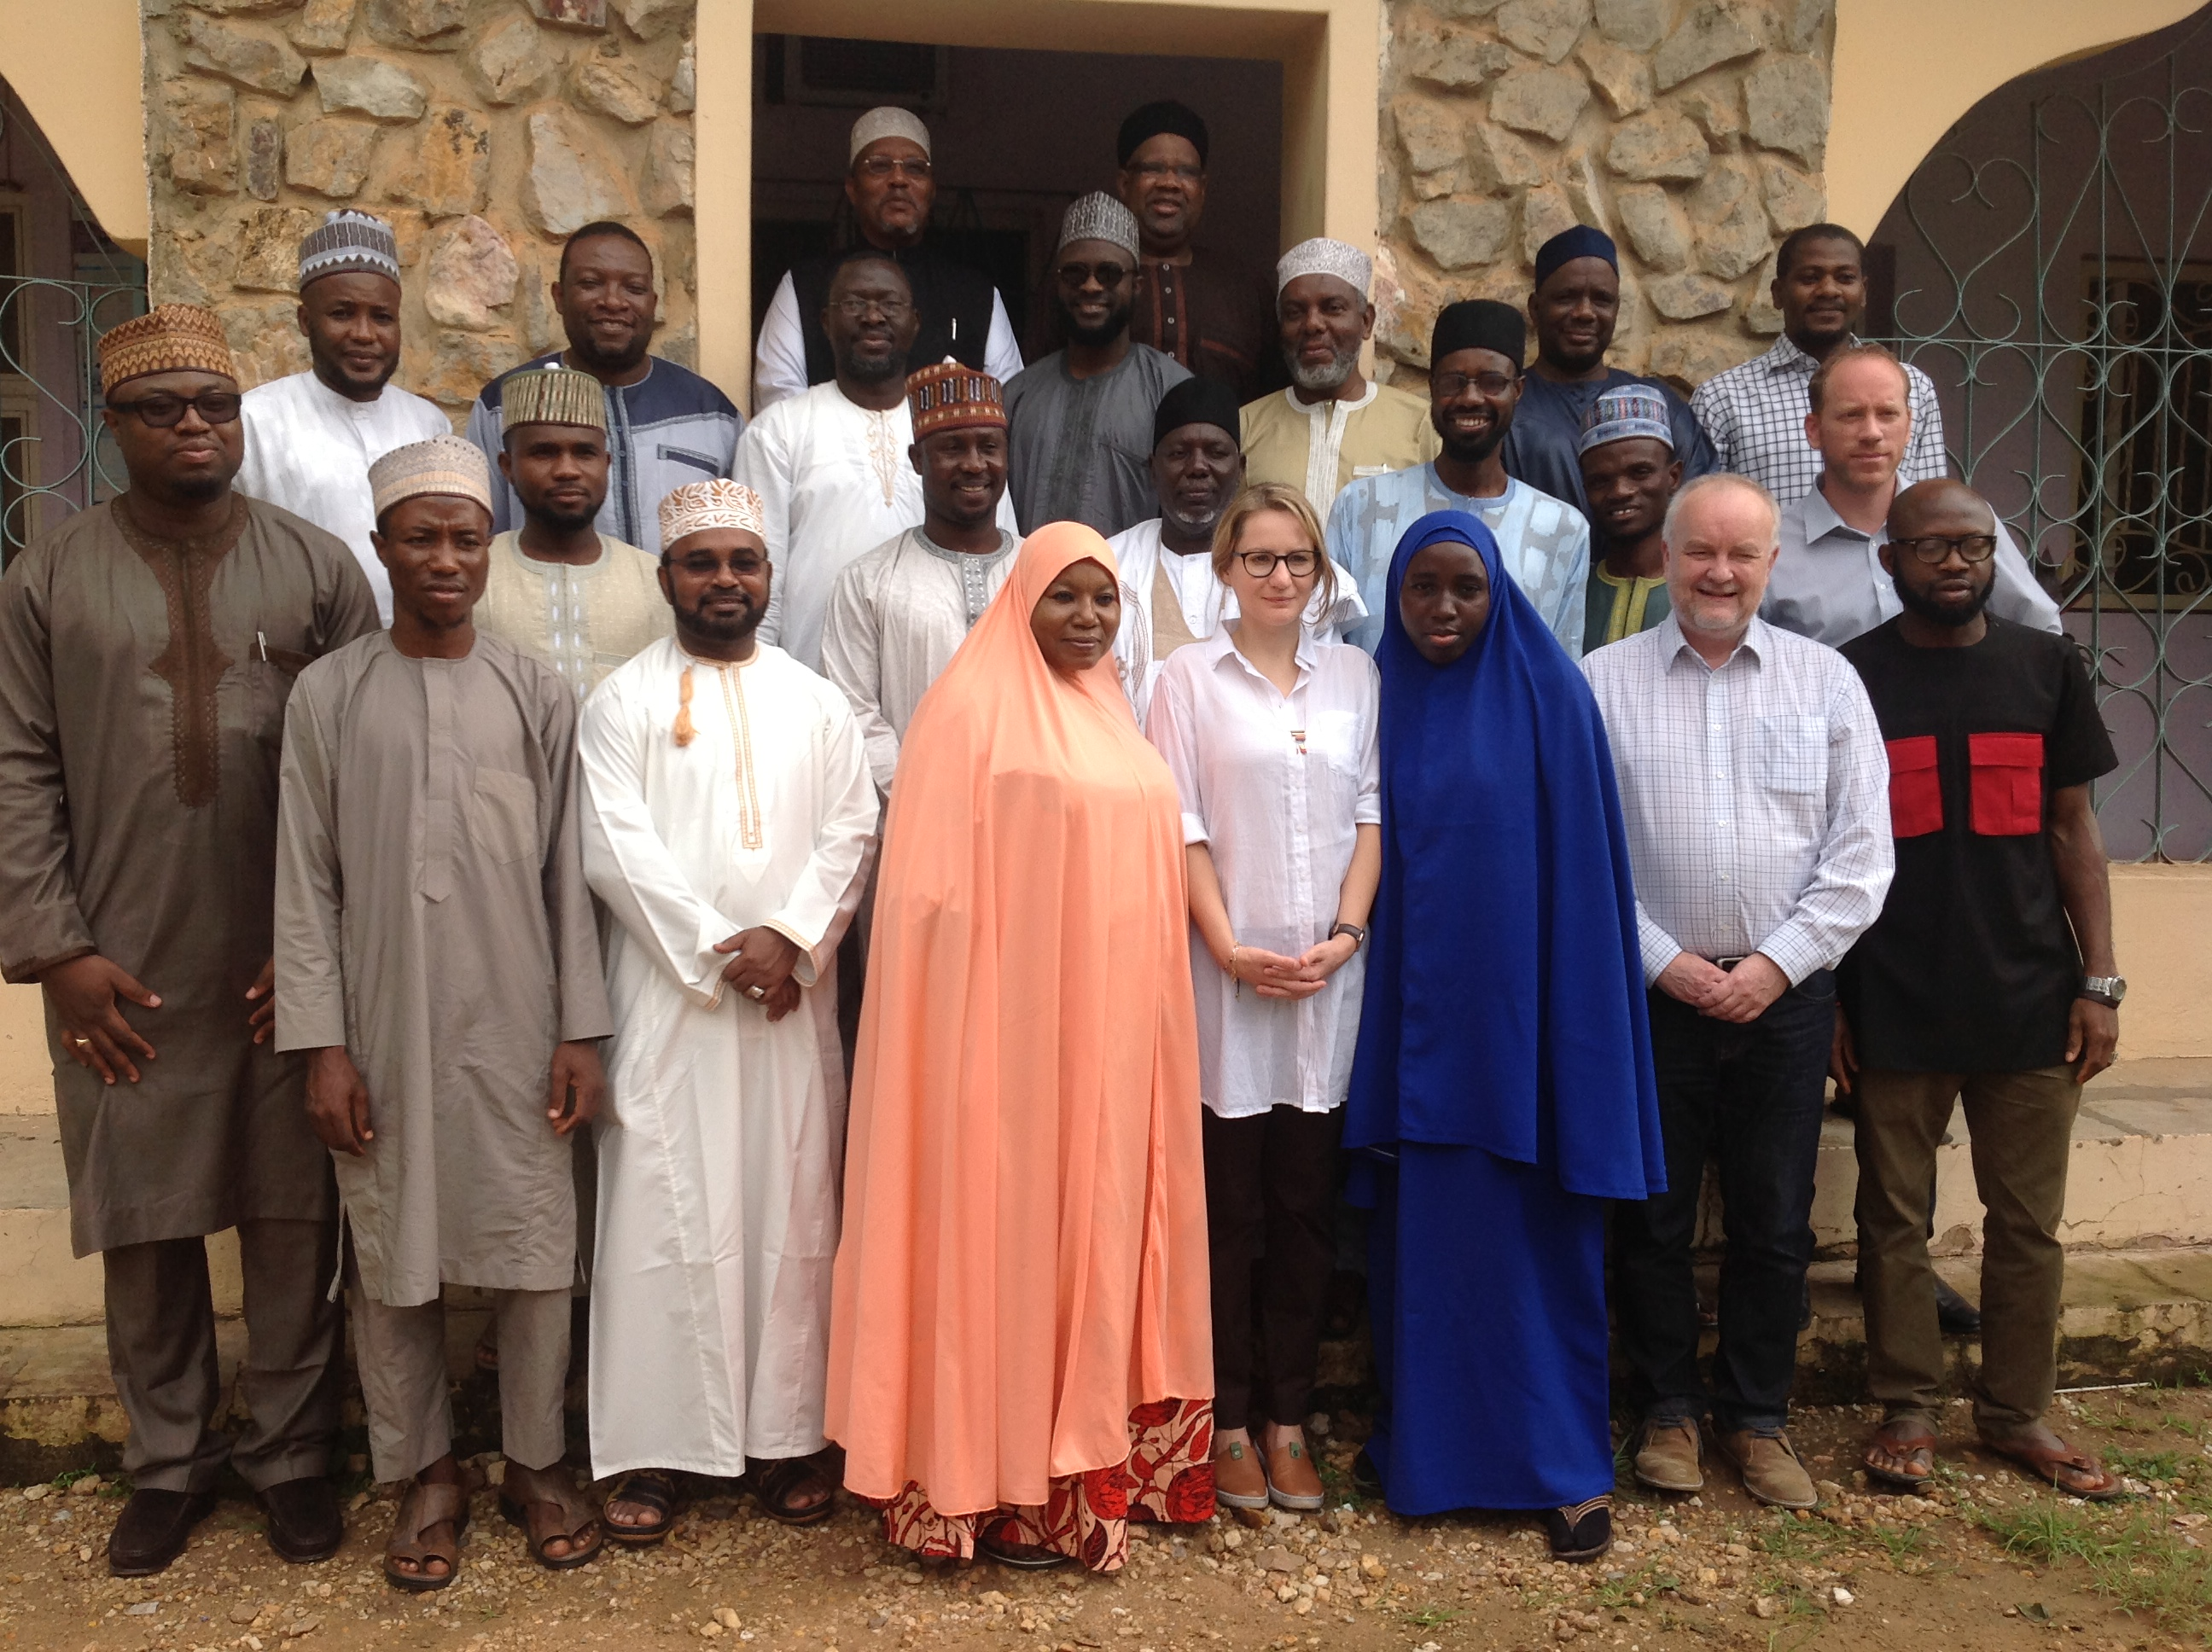 Nigeria Reviewing Contents and Approaches in Responding to Extremists Narratives1